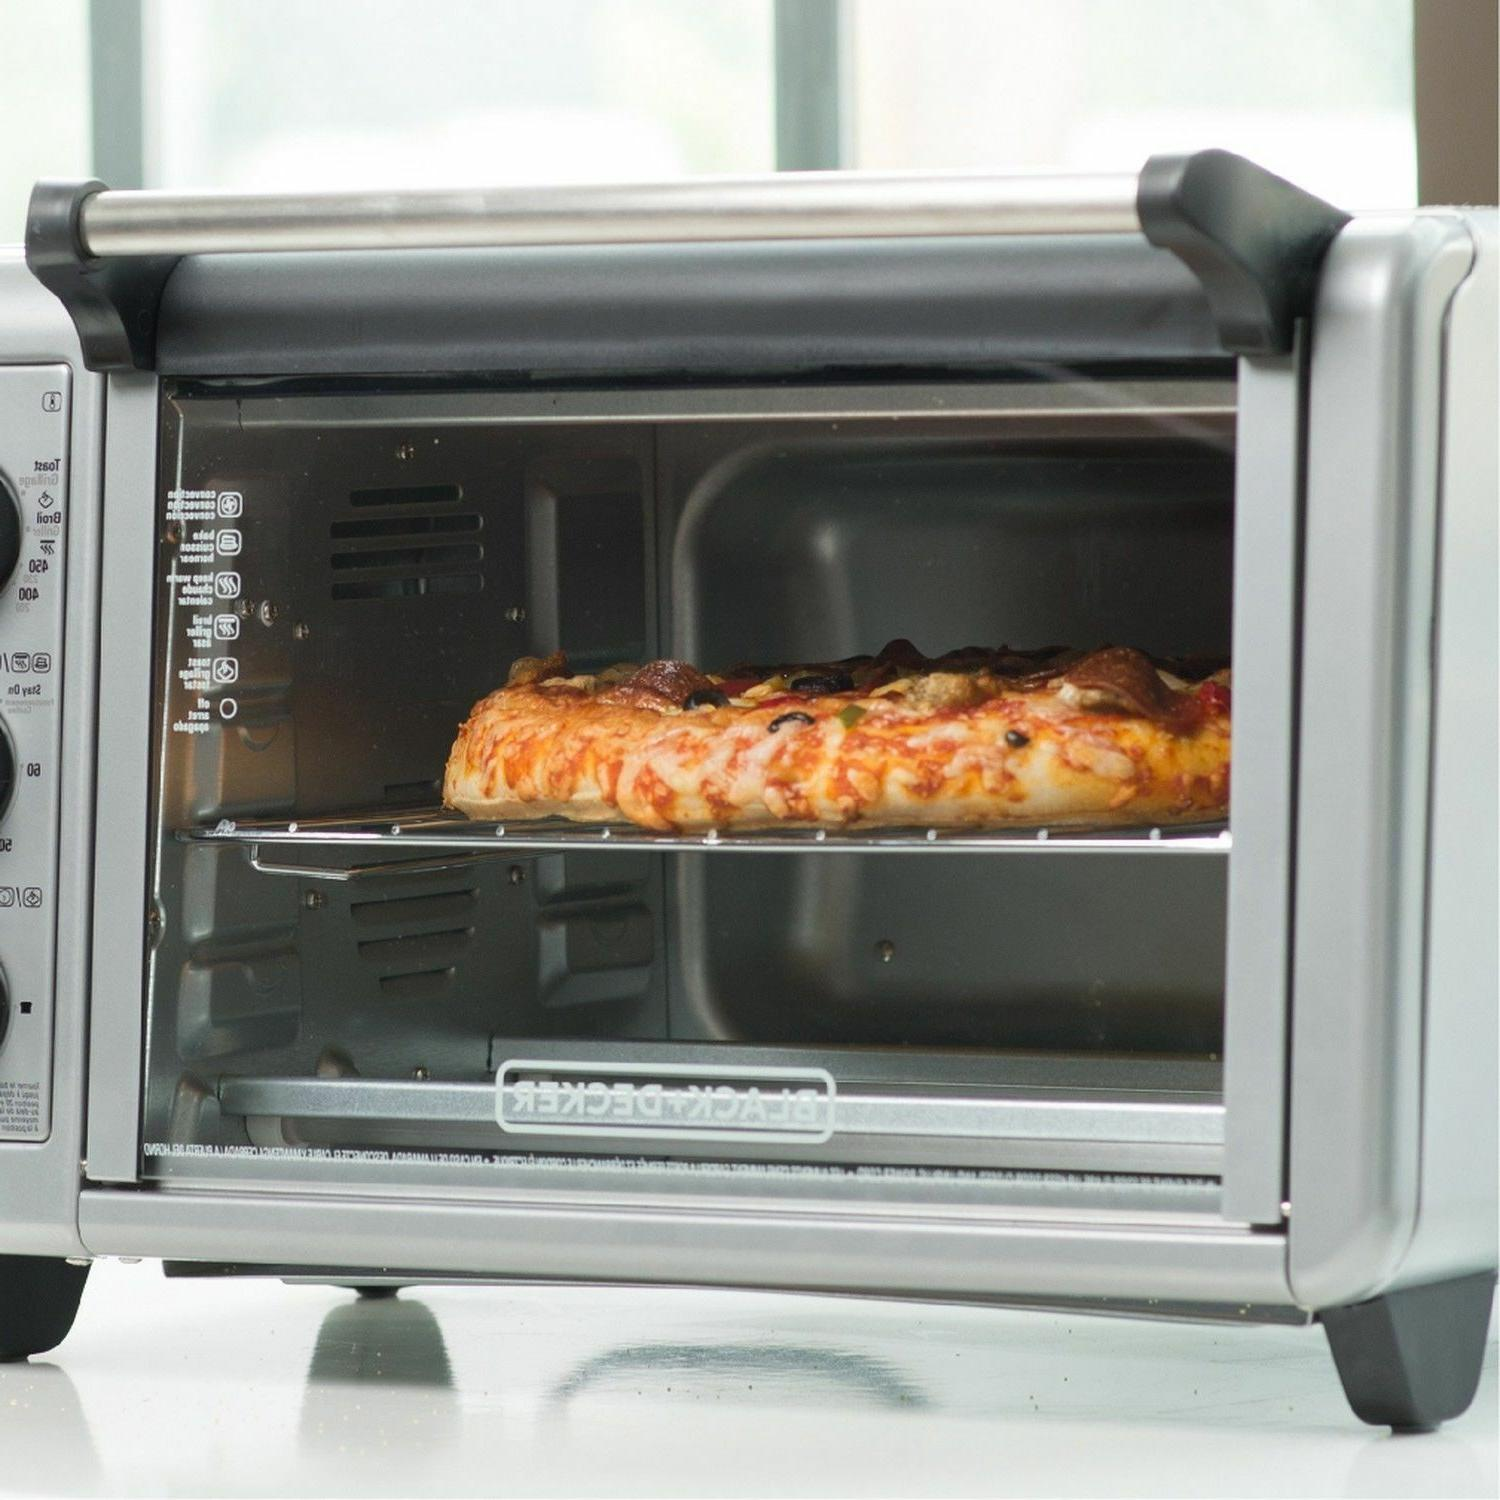 6-Slice Convection Oven BRAND NEW